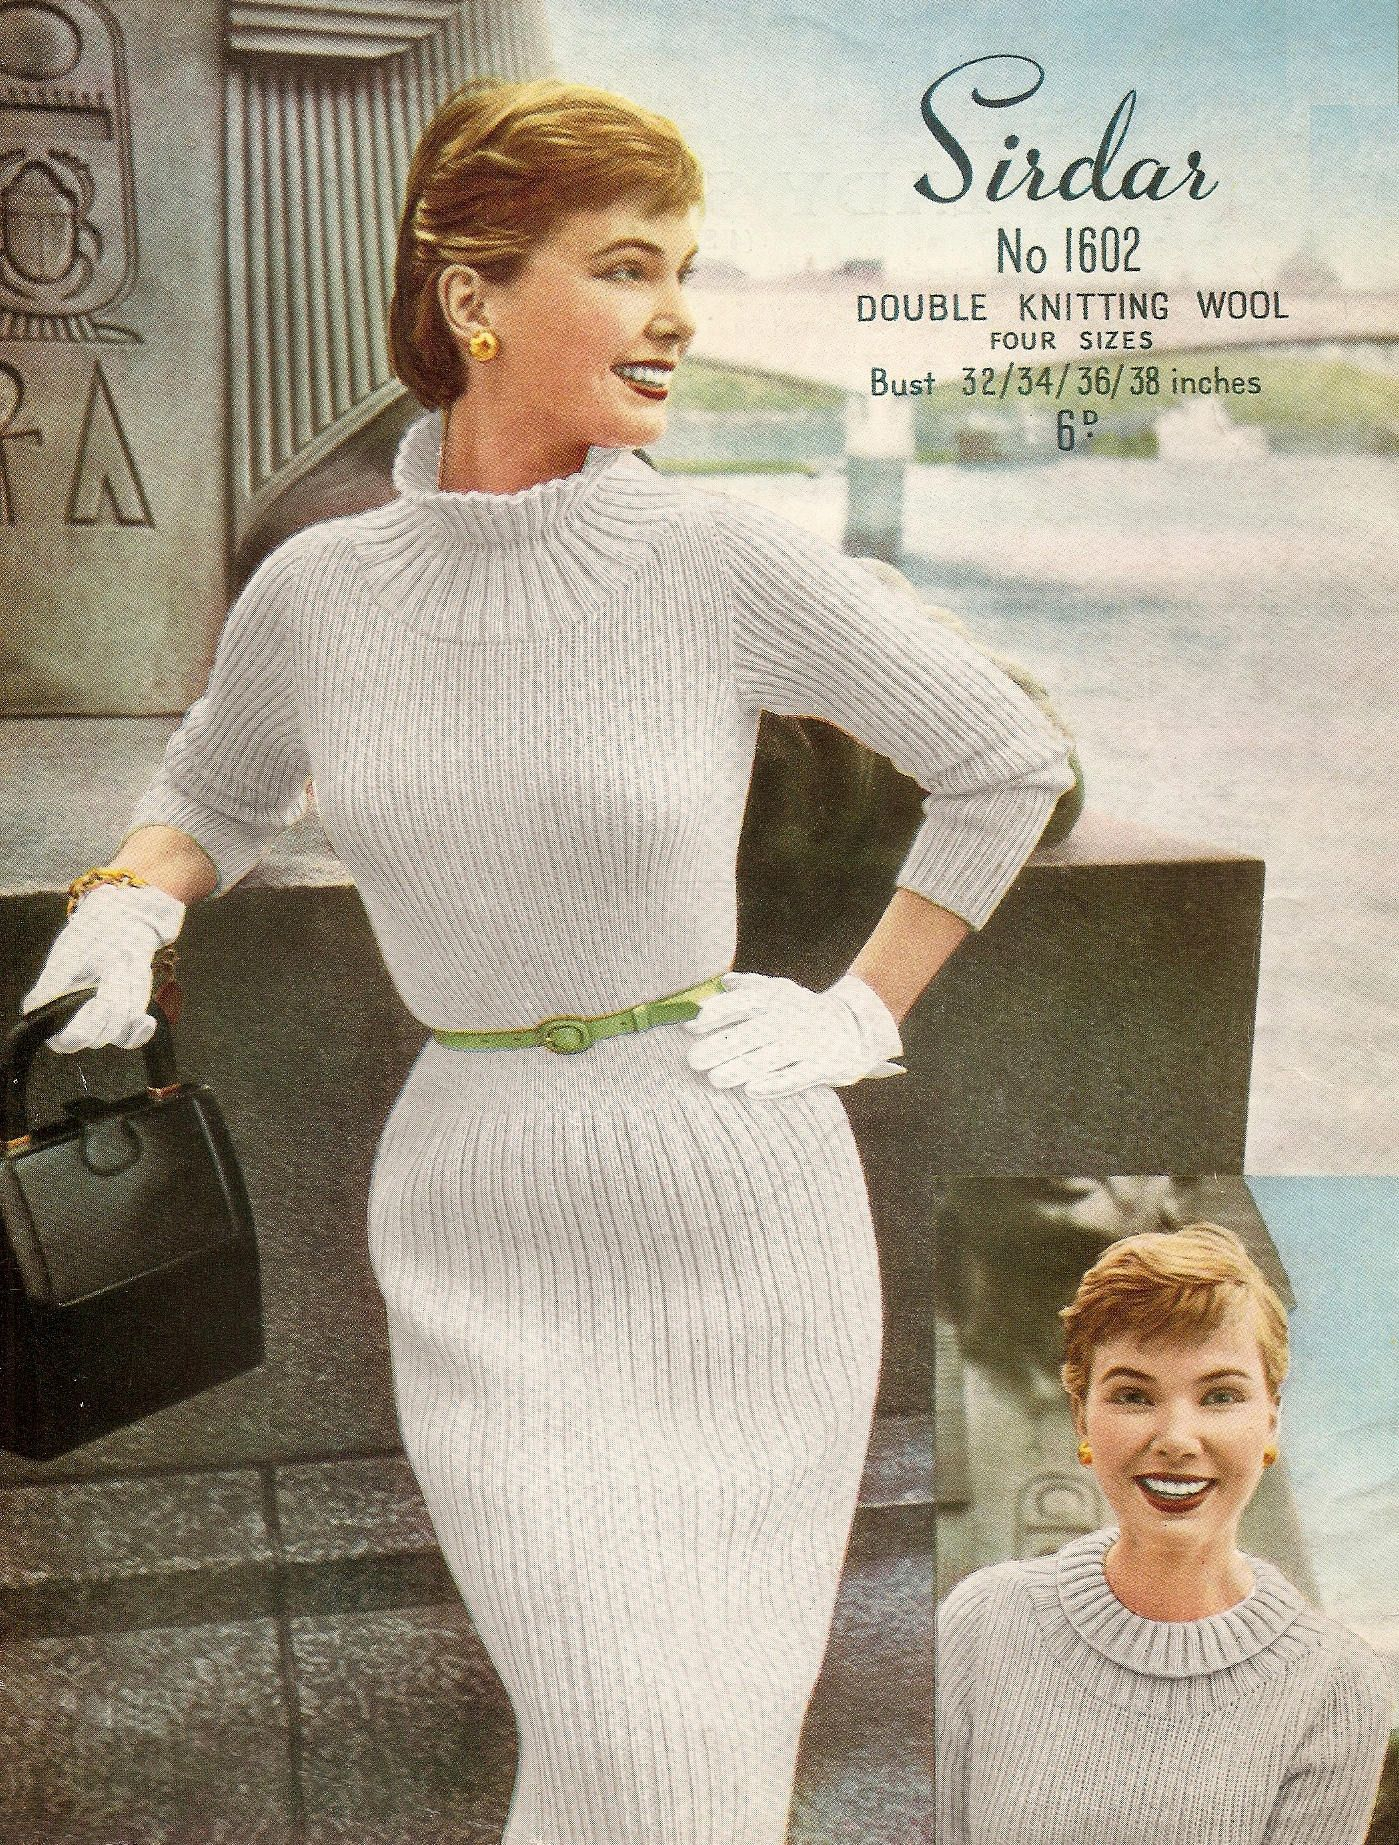 Vintage Lady S Dress Pattern 1950s Three Quarter Sleeves Double Knitting Four Sizes 32 38 Vintage Knittin Knit Dress Pattern Vintage Knitting Vintage Knitwear